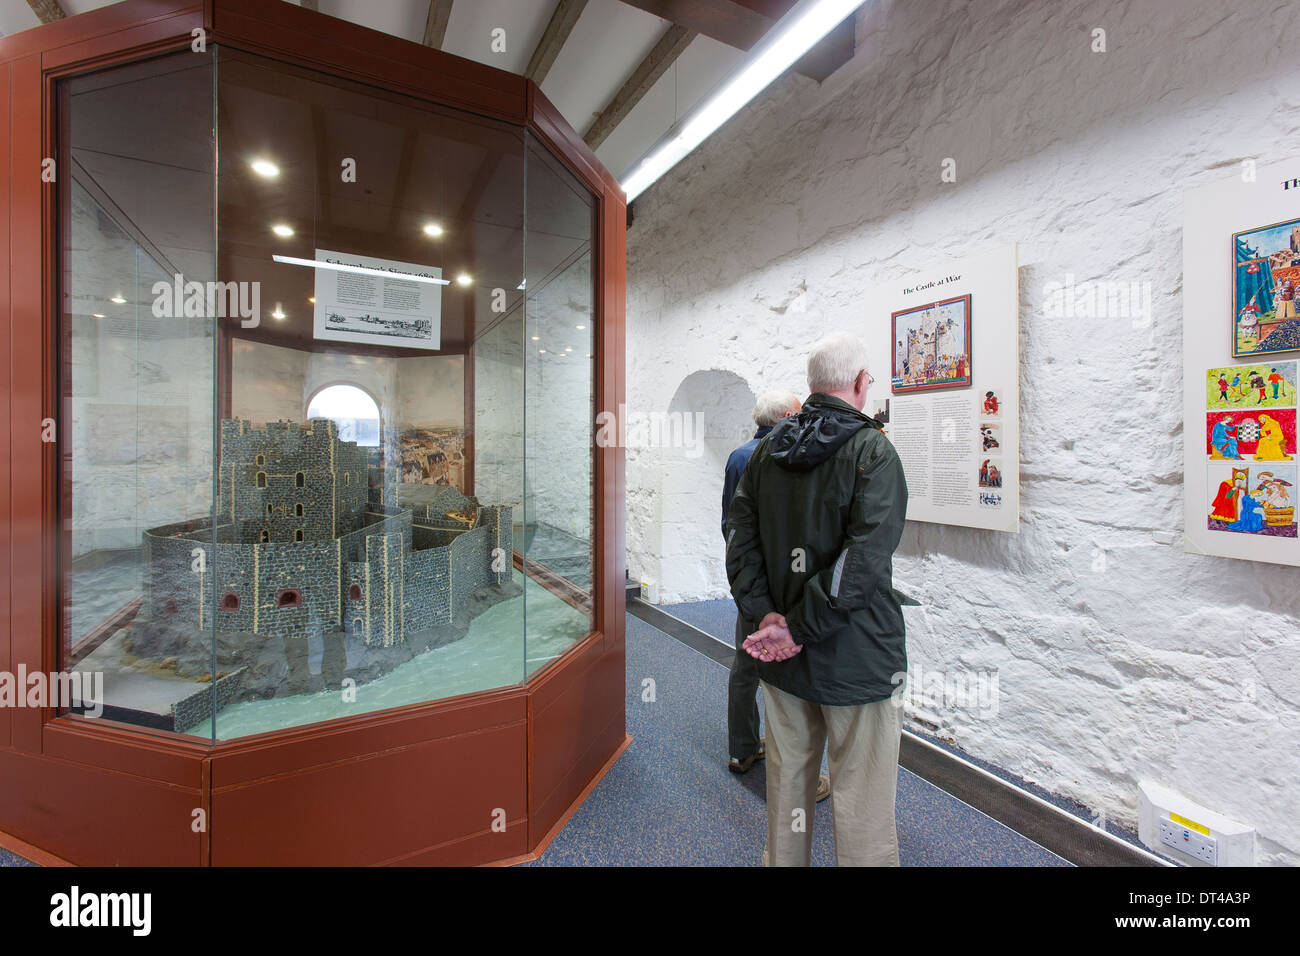 the interior or inside of carrickfergus castle, a norman castle in